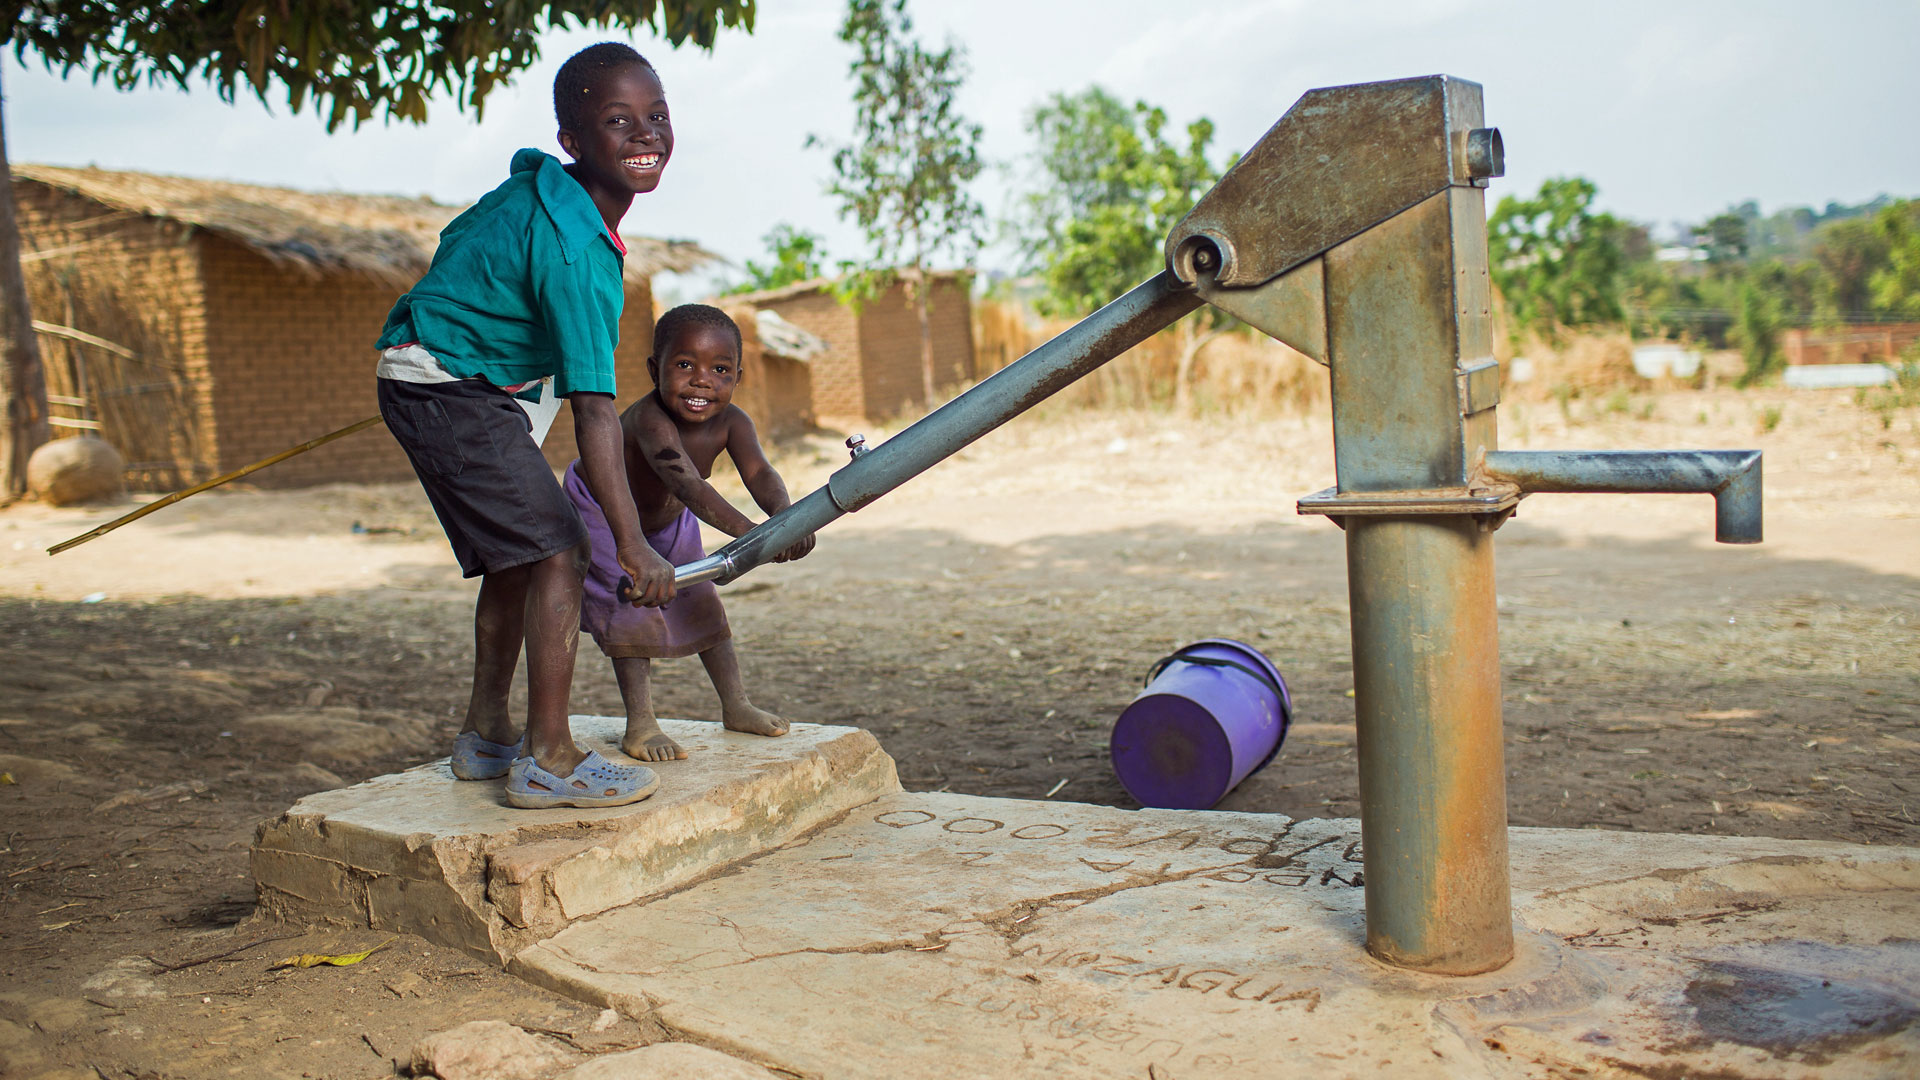 In a village near Bilira (Malawi) two children play with the water pump of a well.